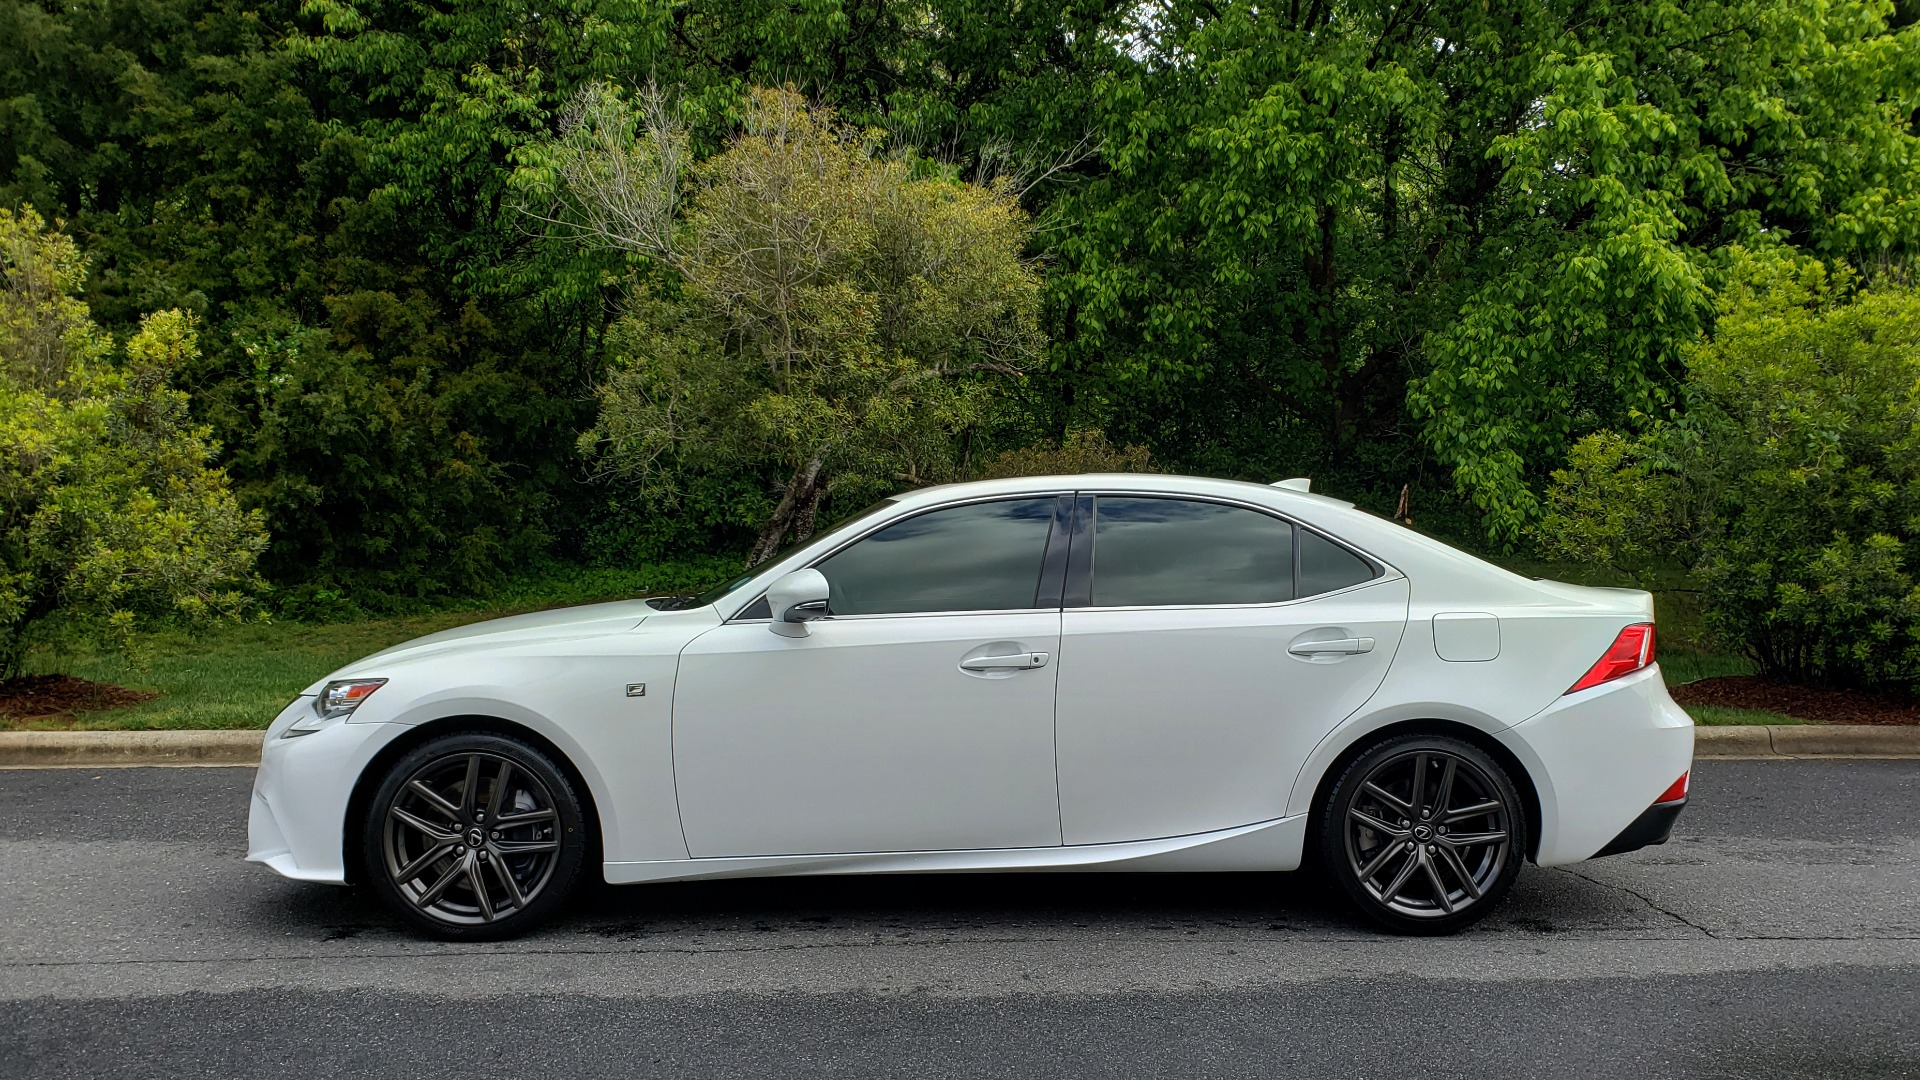 Used 2014 Lexus IS 350 F-SPORT / NAV / SUNROOF / REARVIEW / BSM / MARK LEV SND for sale Sold at Formula Imports in Charlotte NC 28227 2